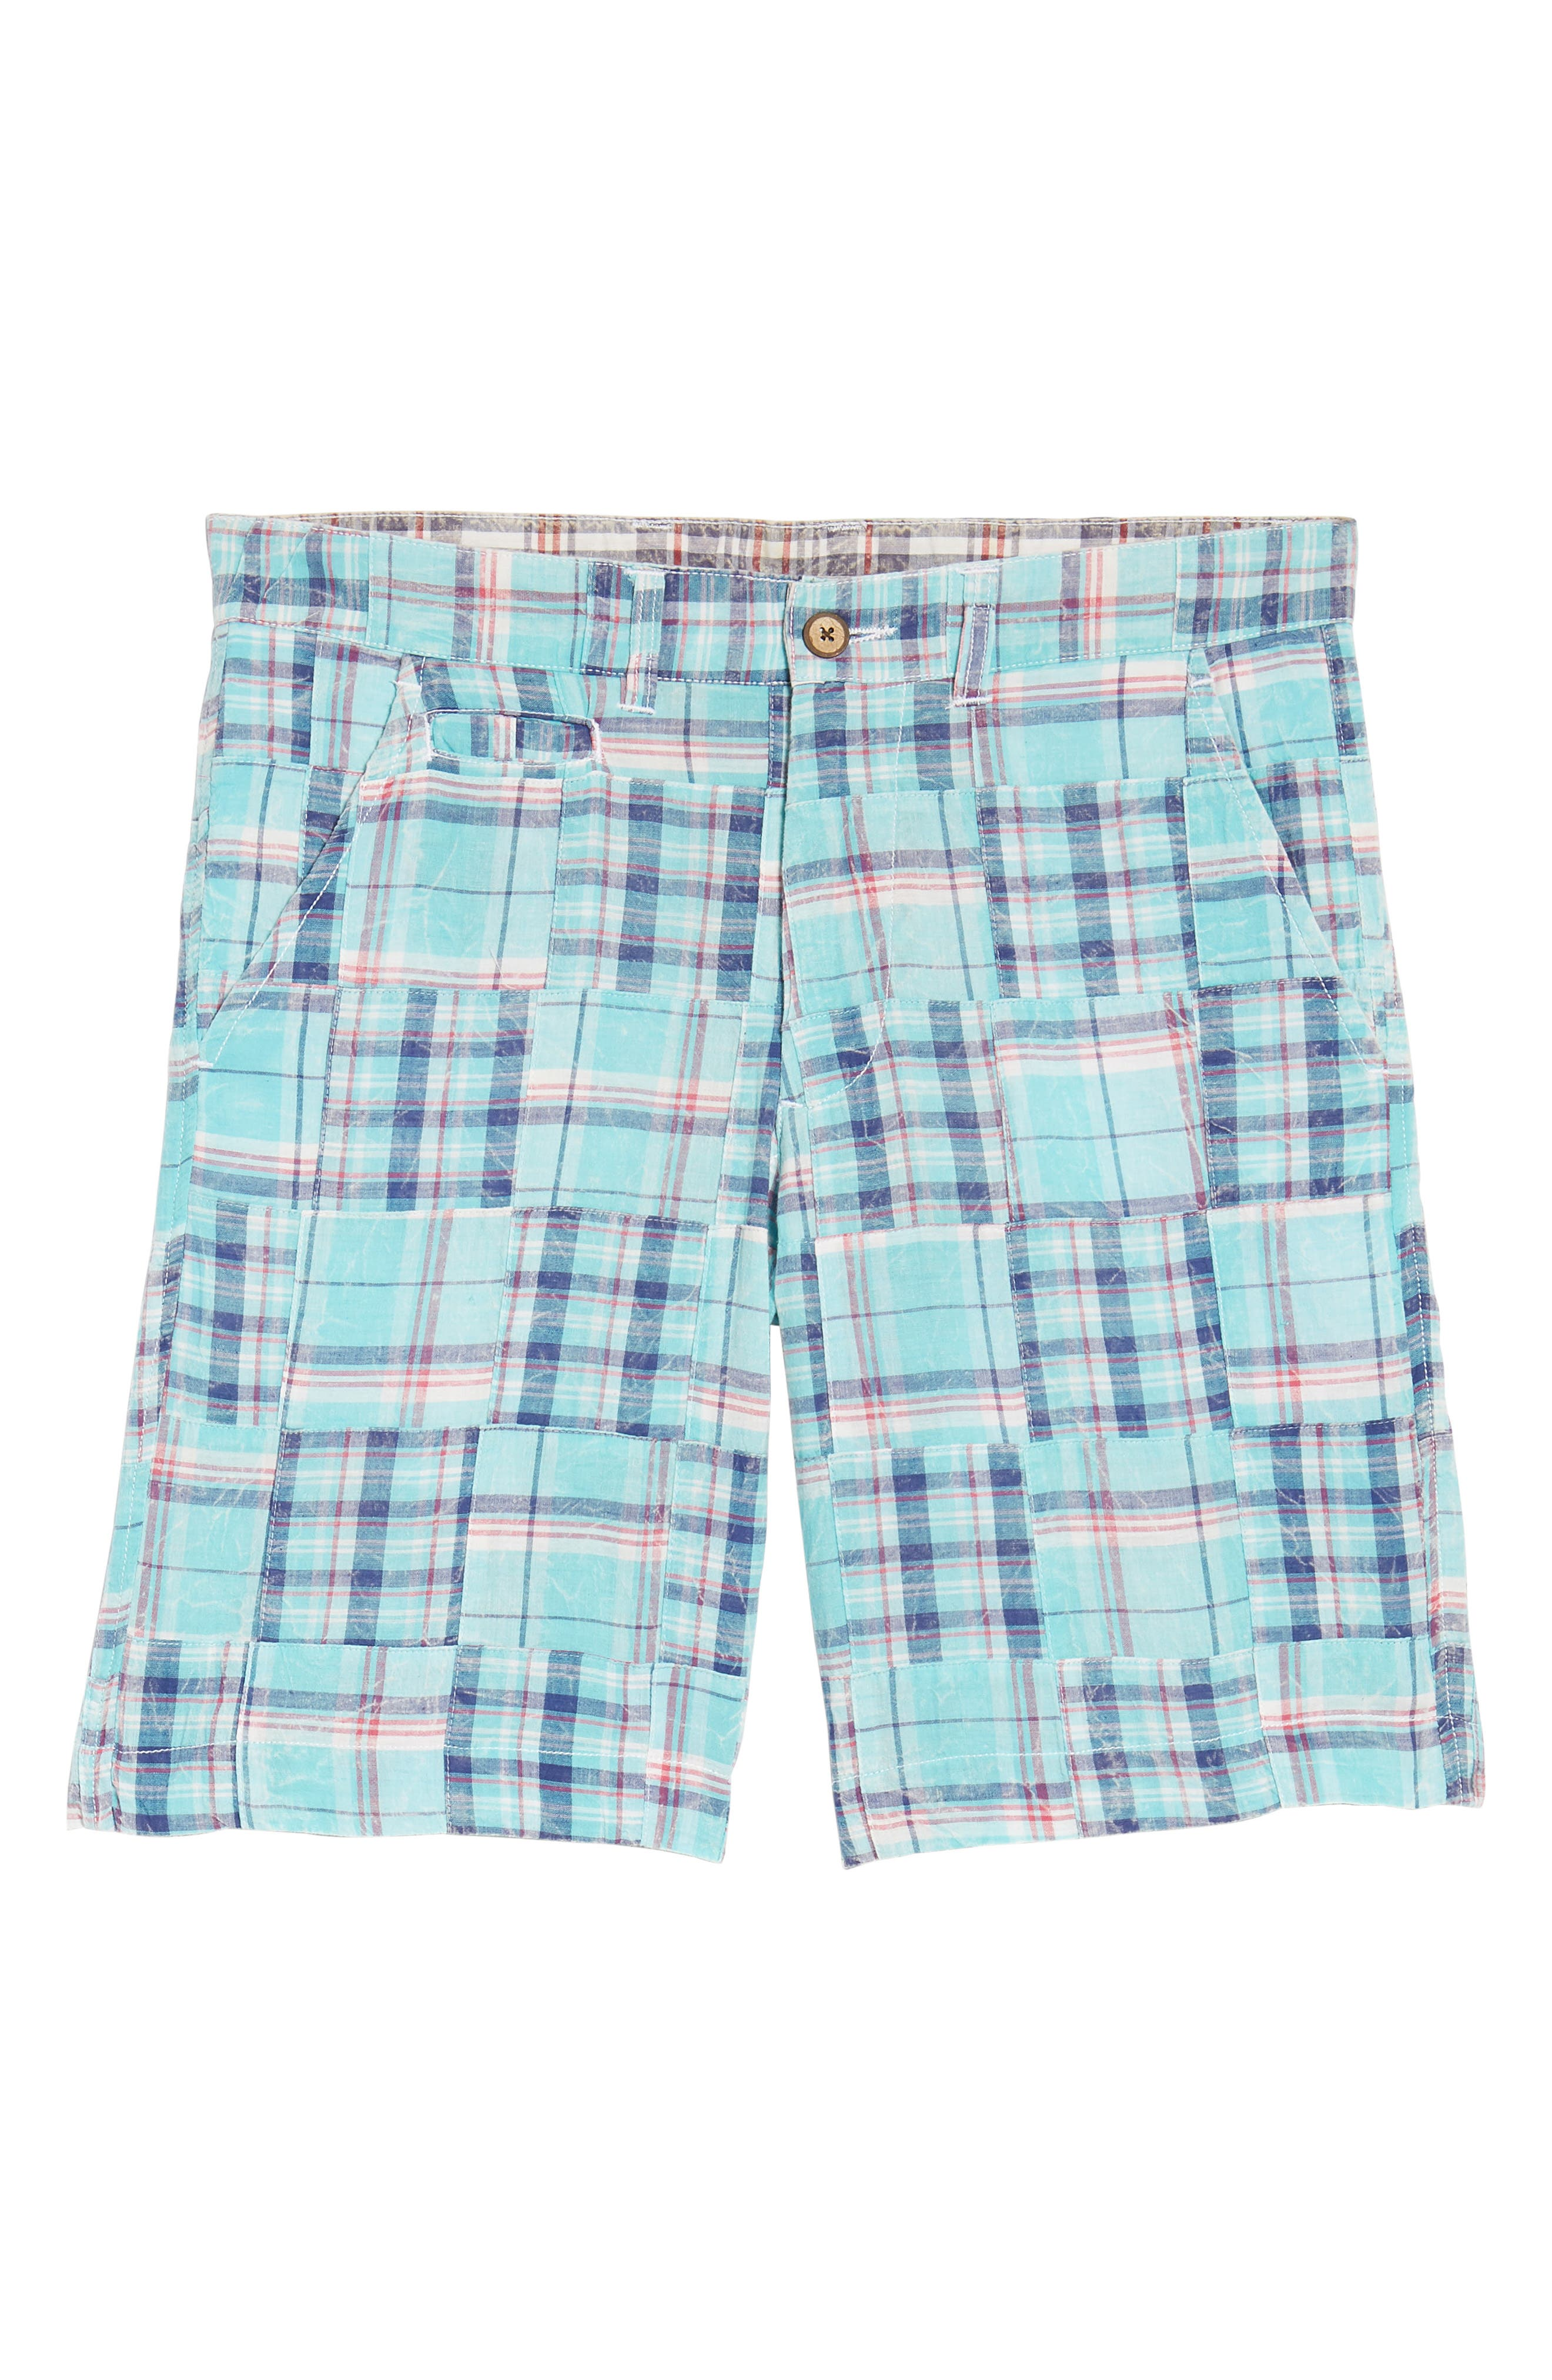 Acid Wash Plaid Patchwork Shorts,                             Alternate thumbnail 6, color,                             Orange